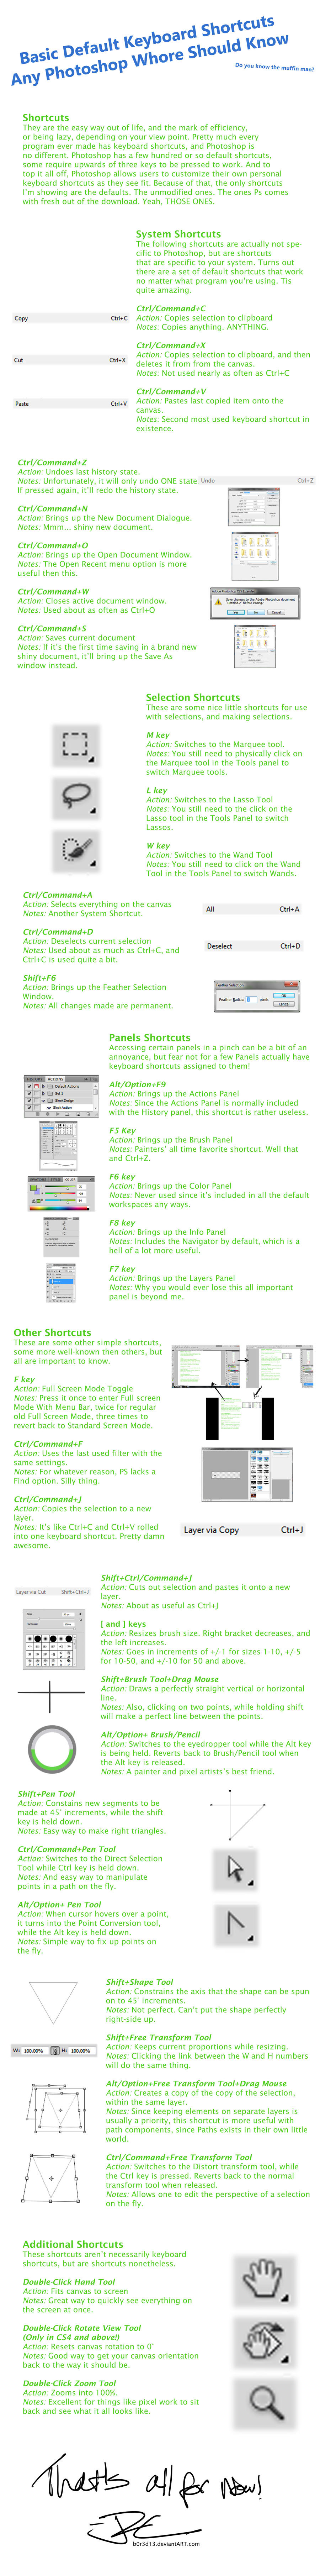 Awesome Photoshop Shortcuts by JRCnrd